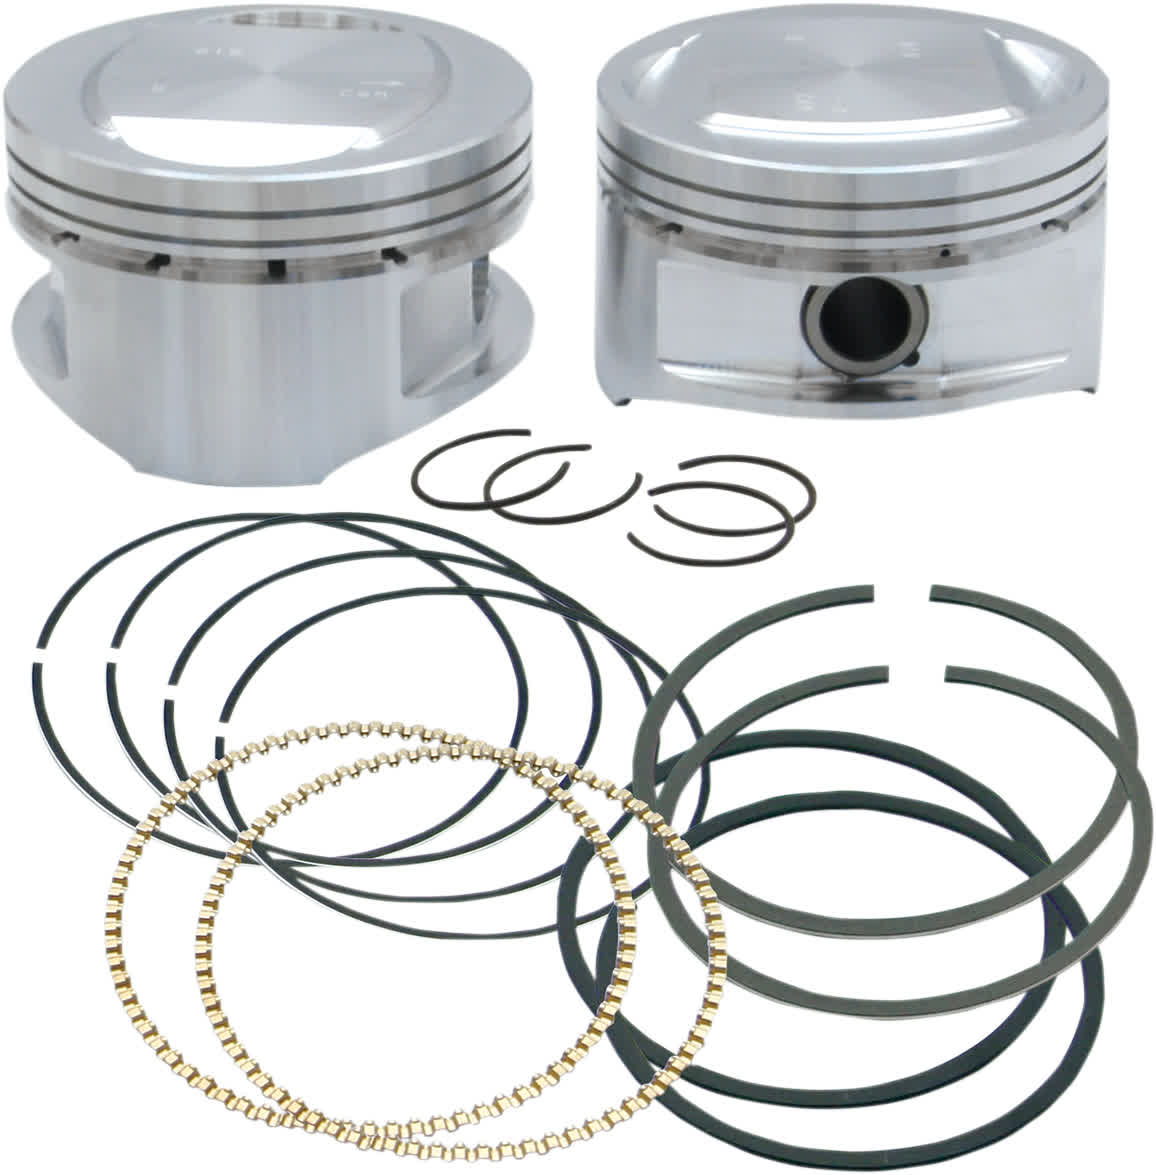 S&S Cycle 92-1201 Forged Piston Kit for 95ci. Big Bore Kit